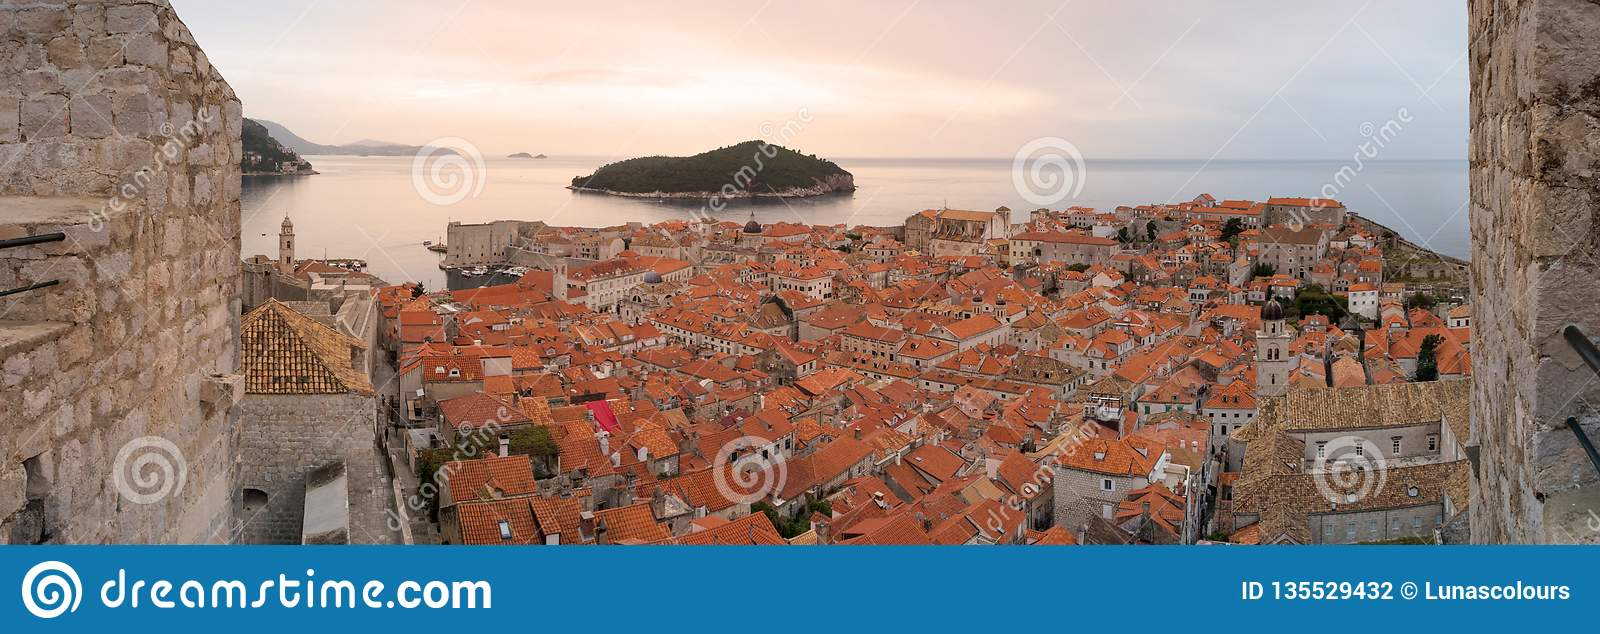 Dubrovnik Old Town from City Walls